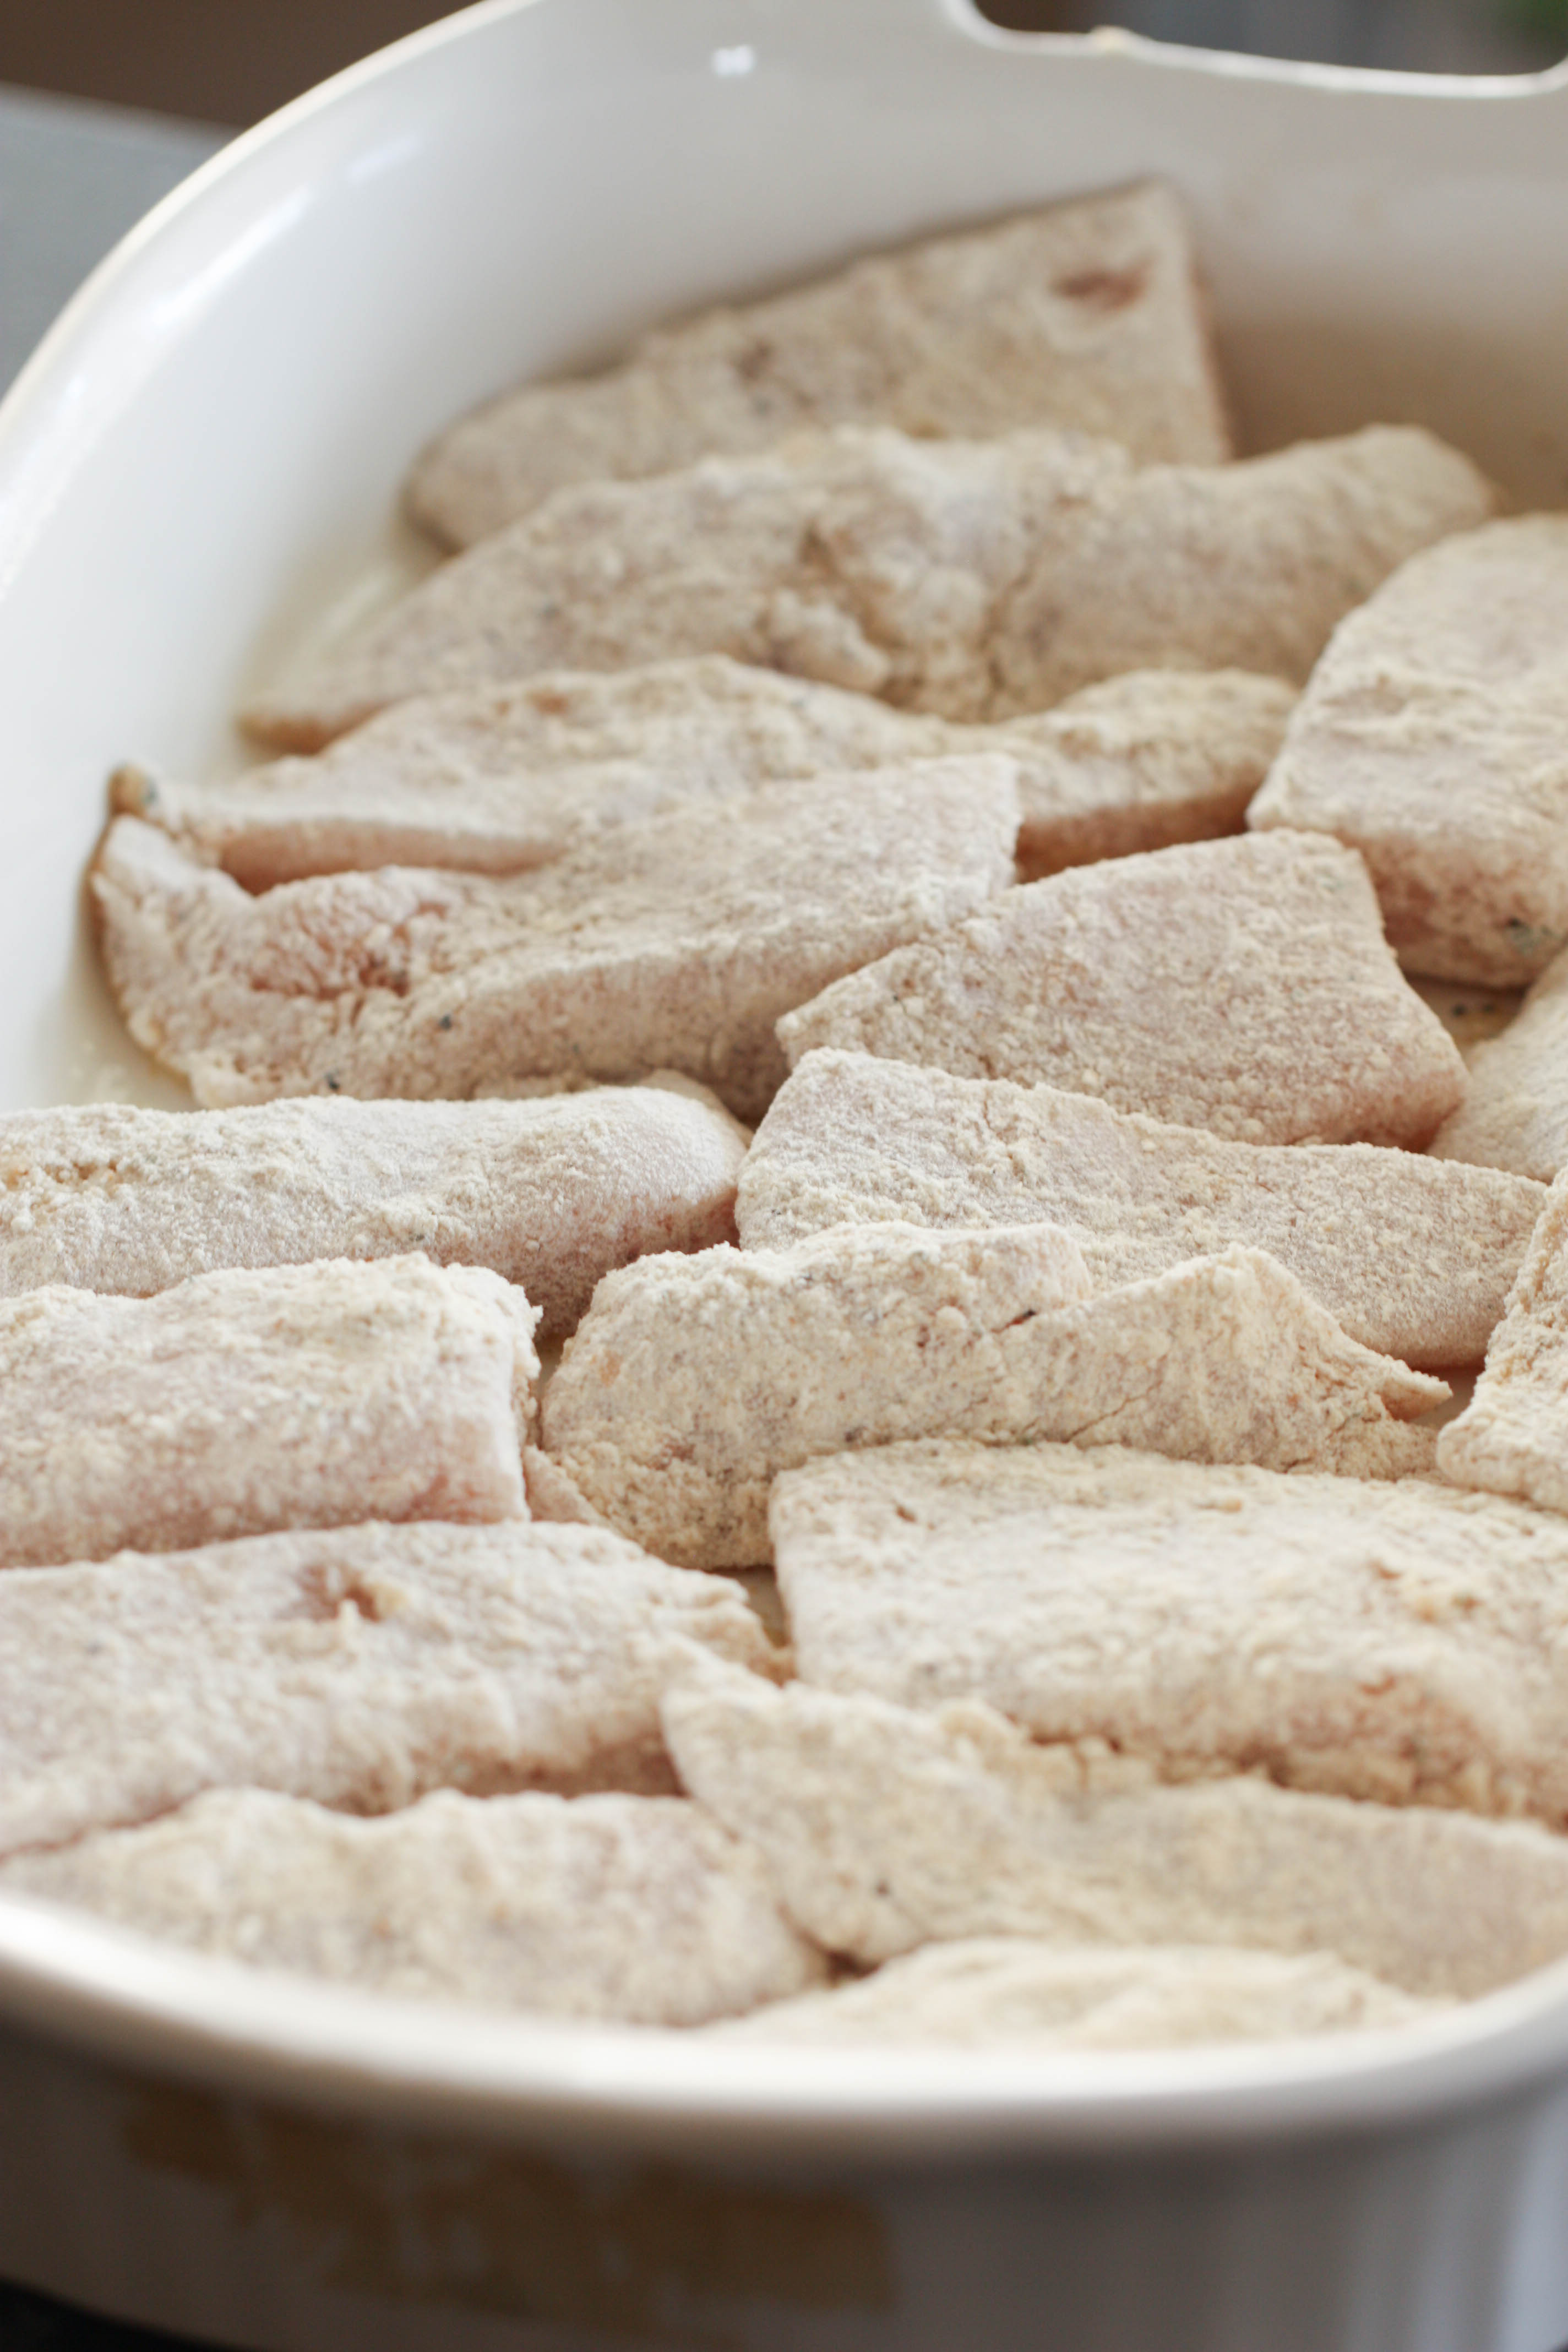 chicken tenders dredged in flour in a white bowl